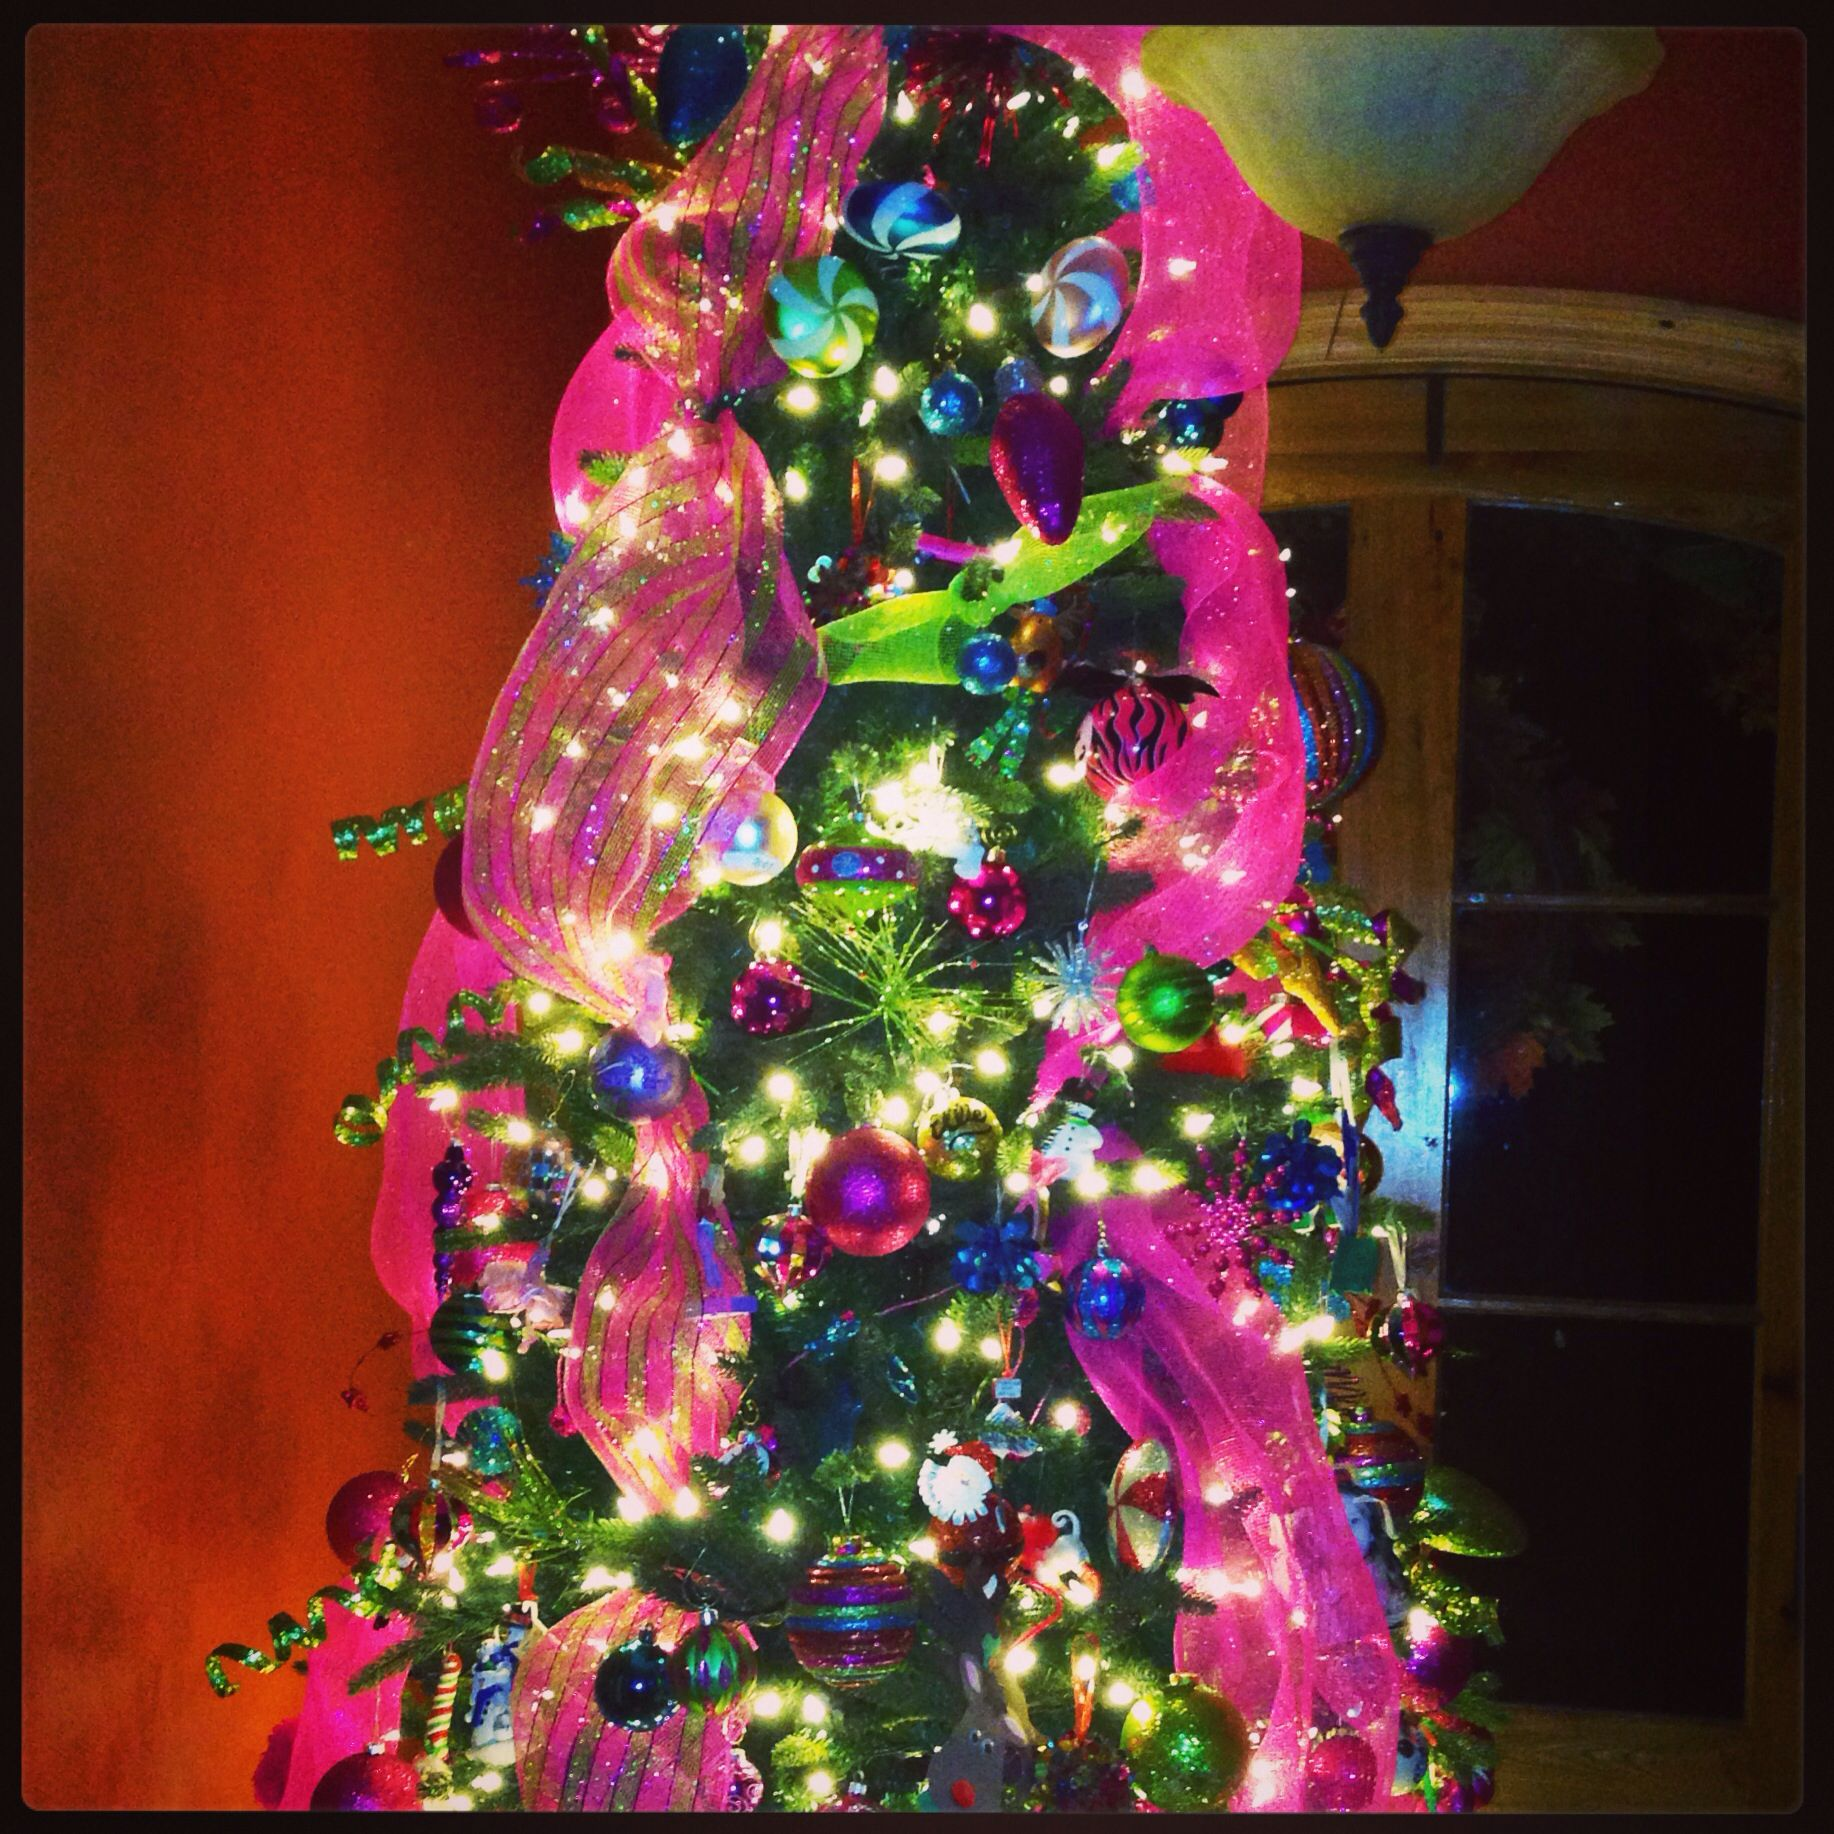 Red Turquoise Not Just For Holiday Decor: Loving My Pink, Green And Turquoise Christmas Tree